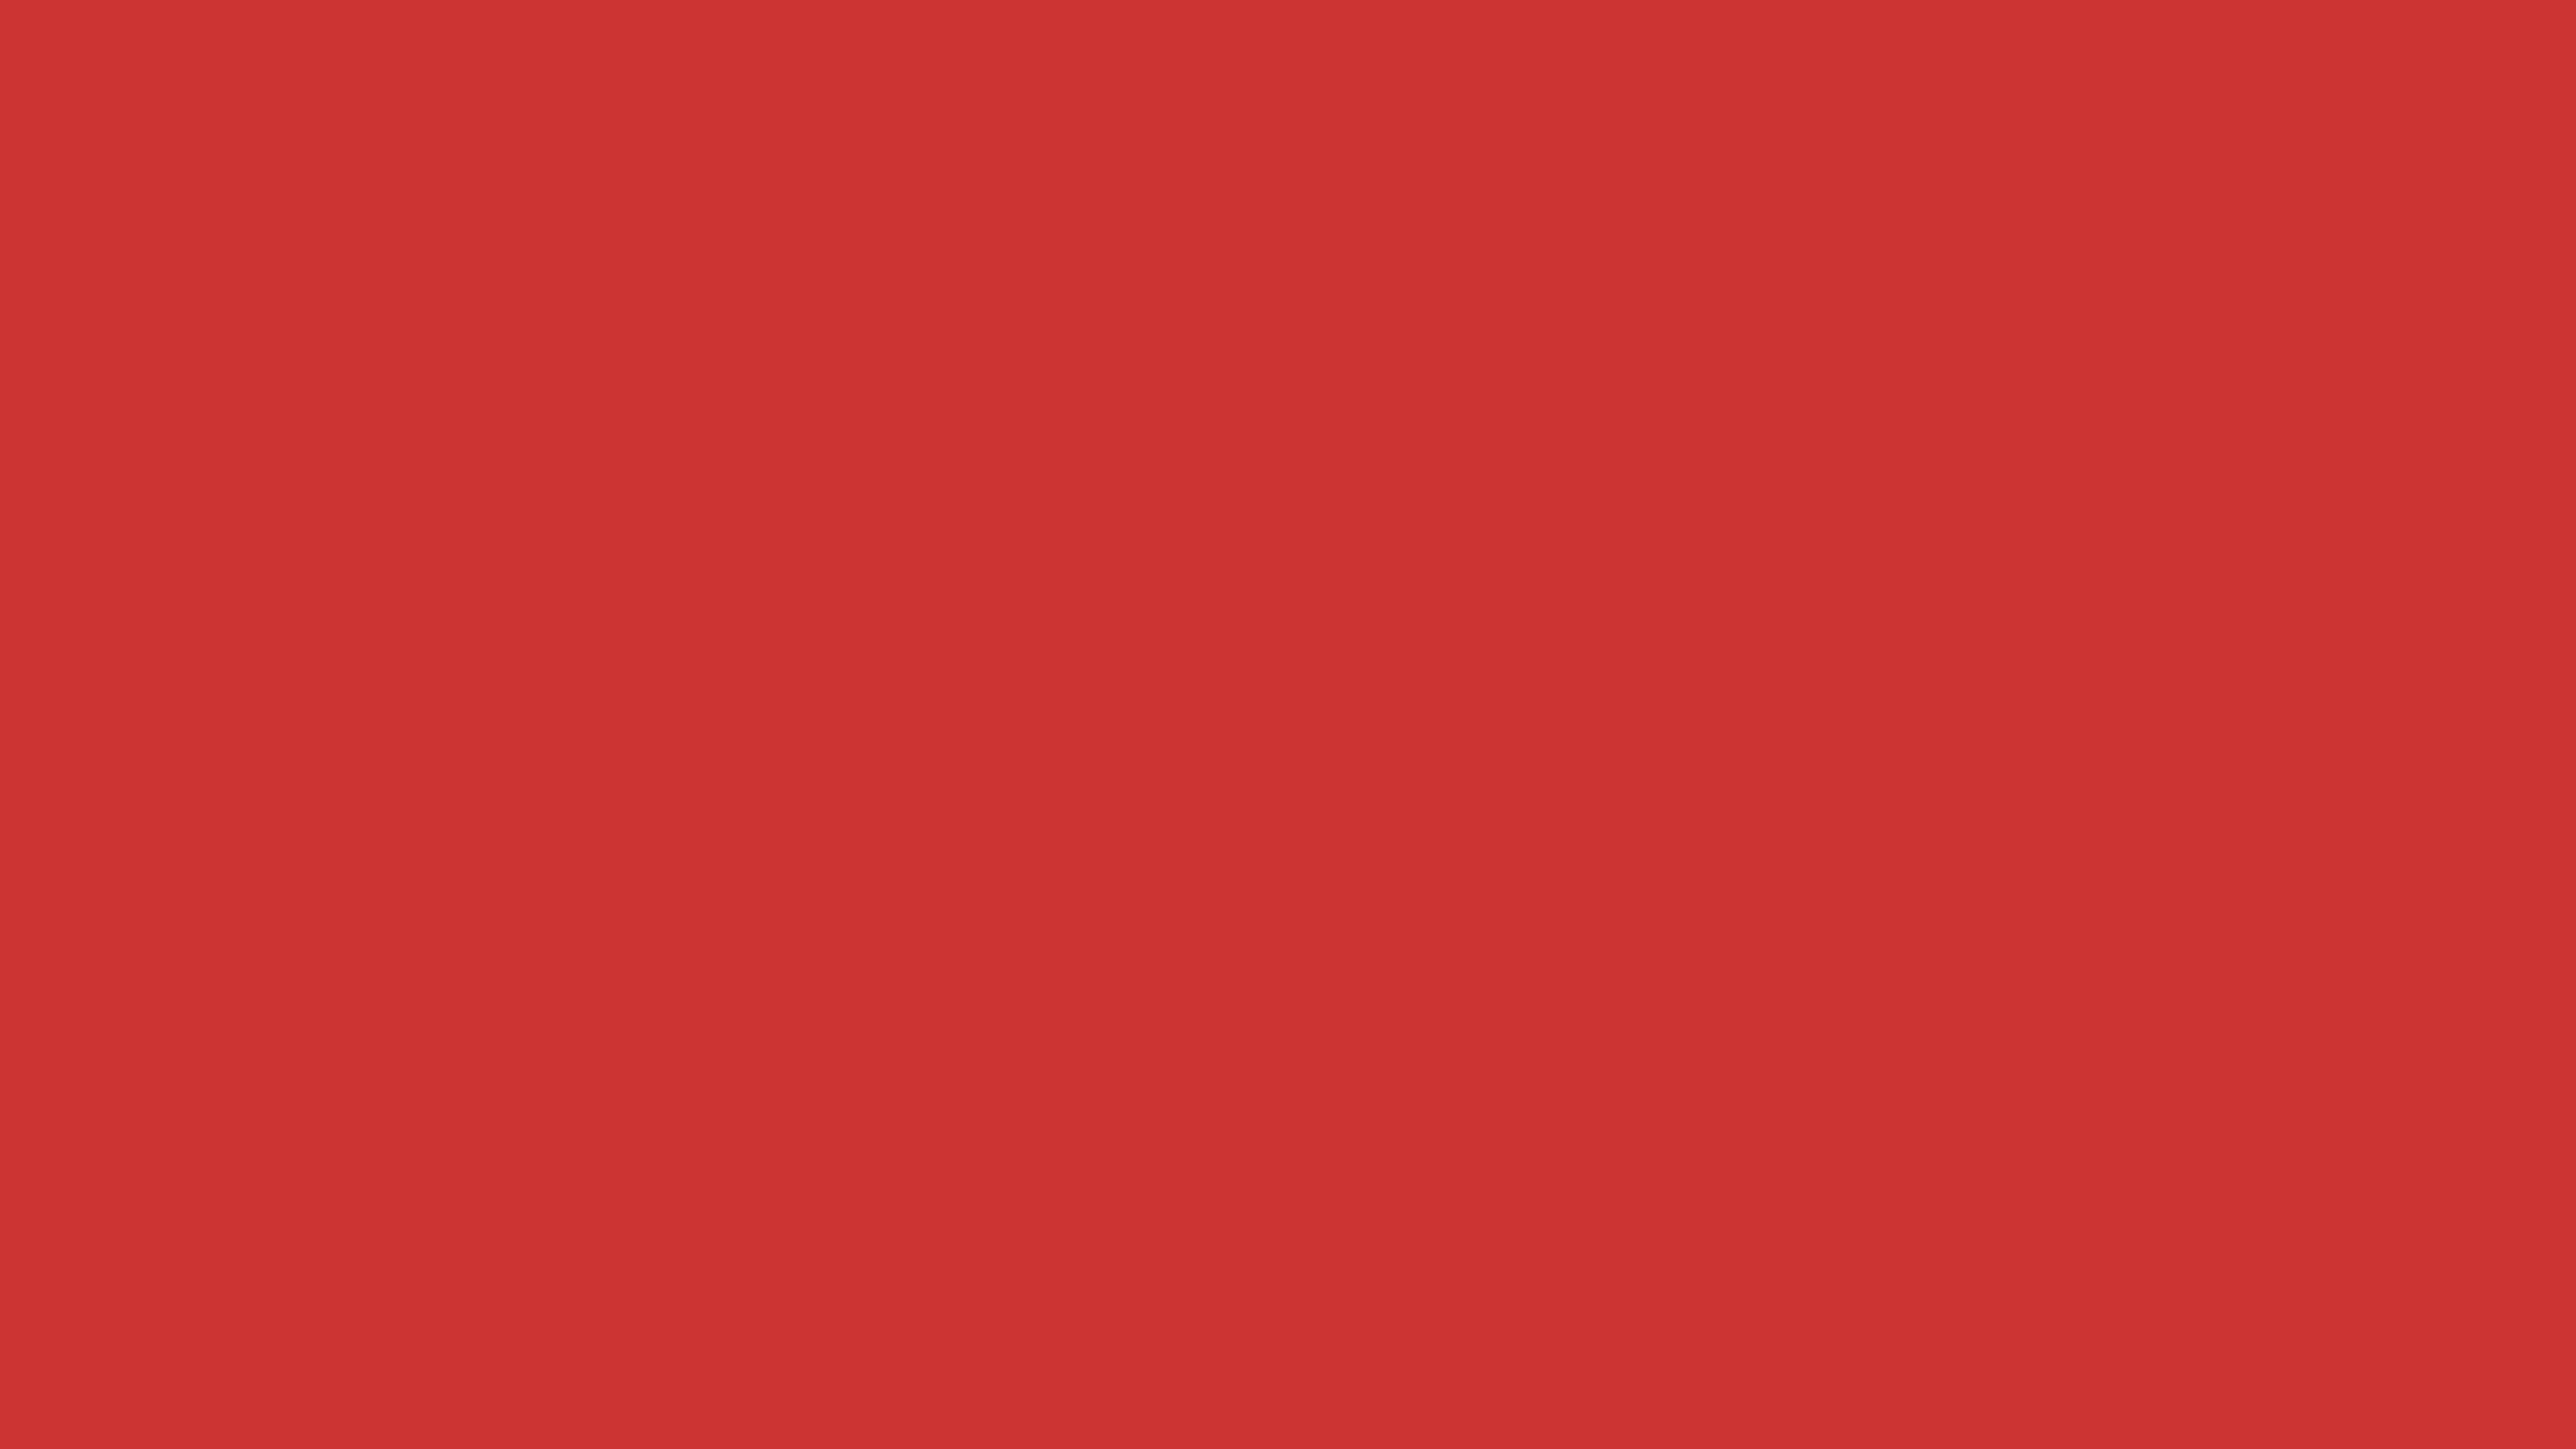 3840x2160 Persian Red Solid Color Background